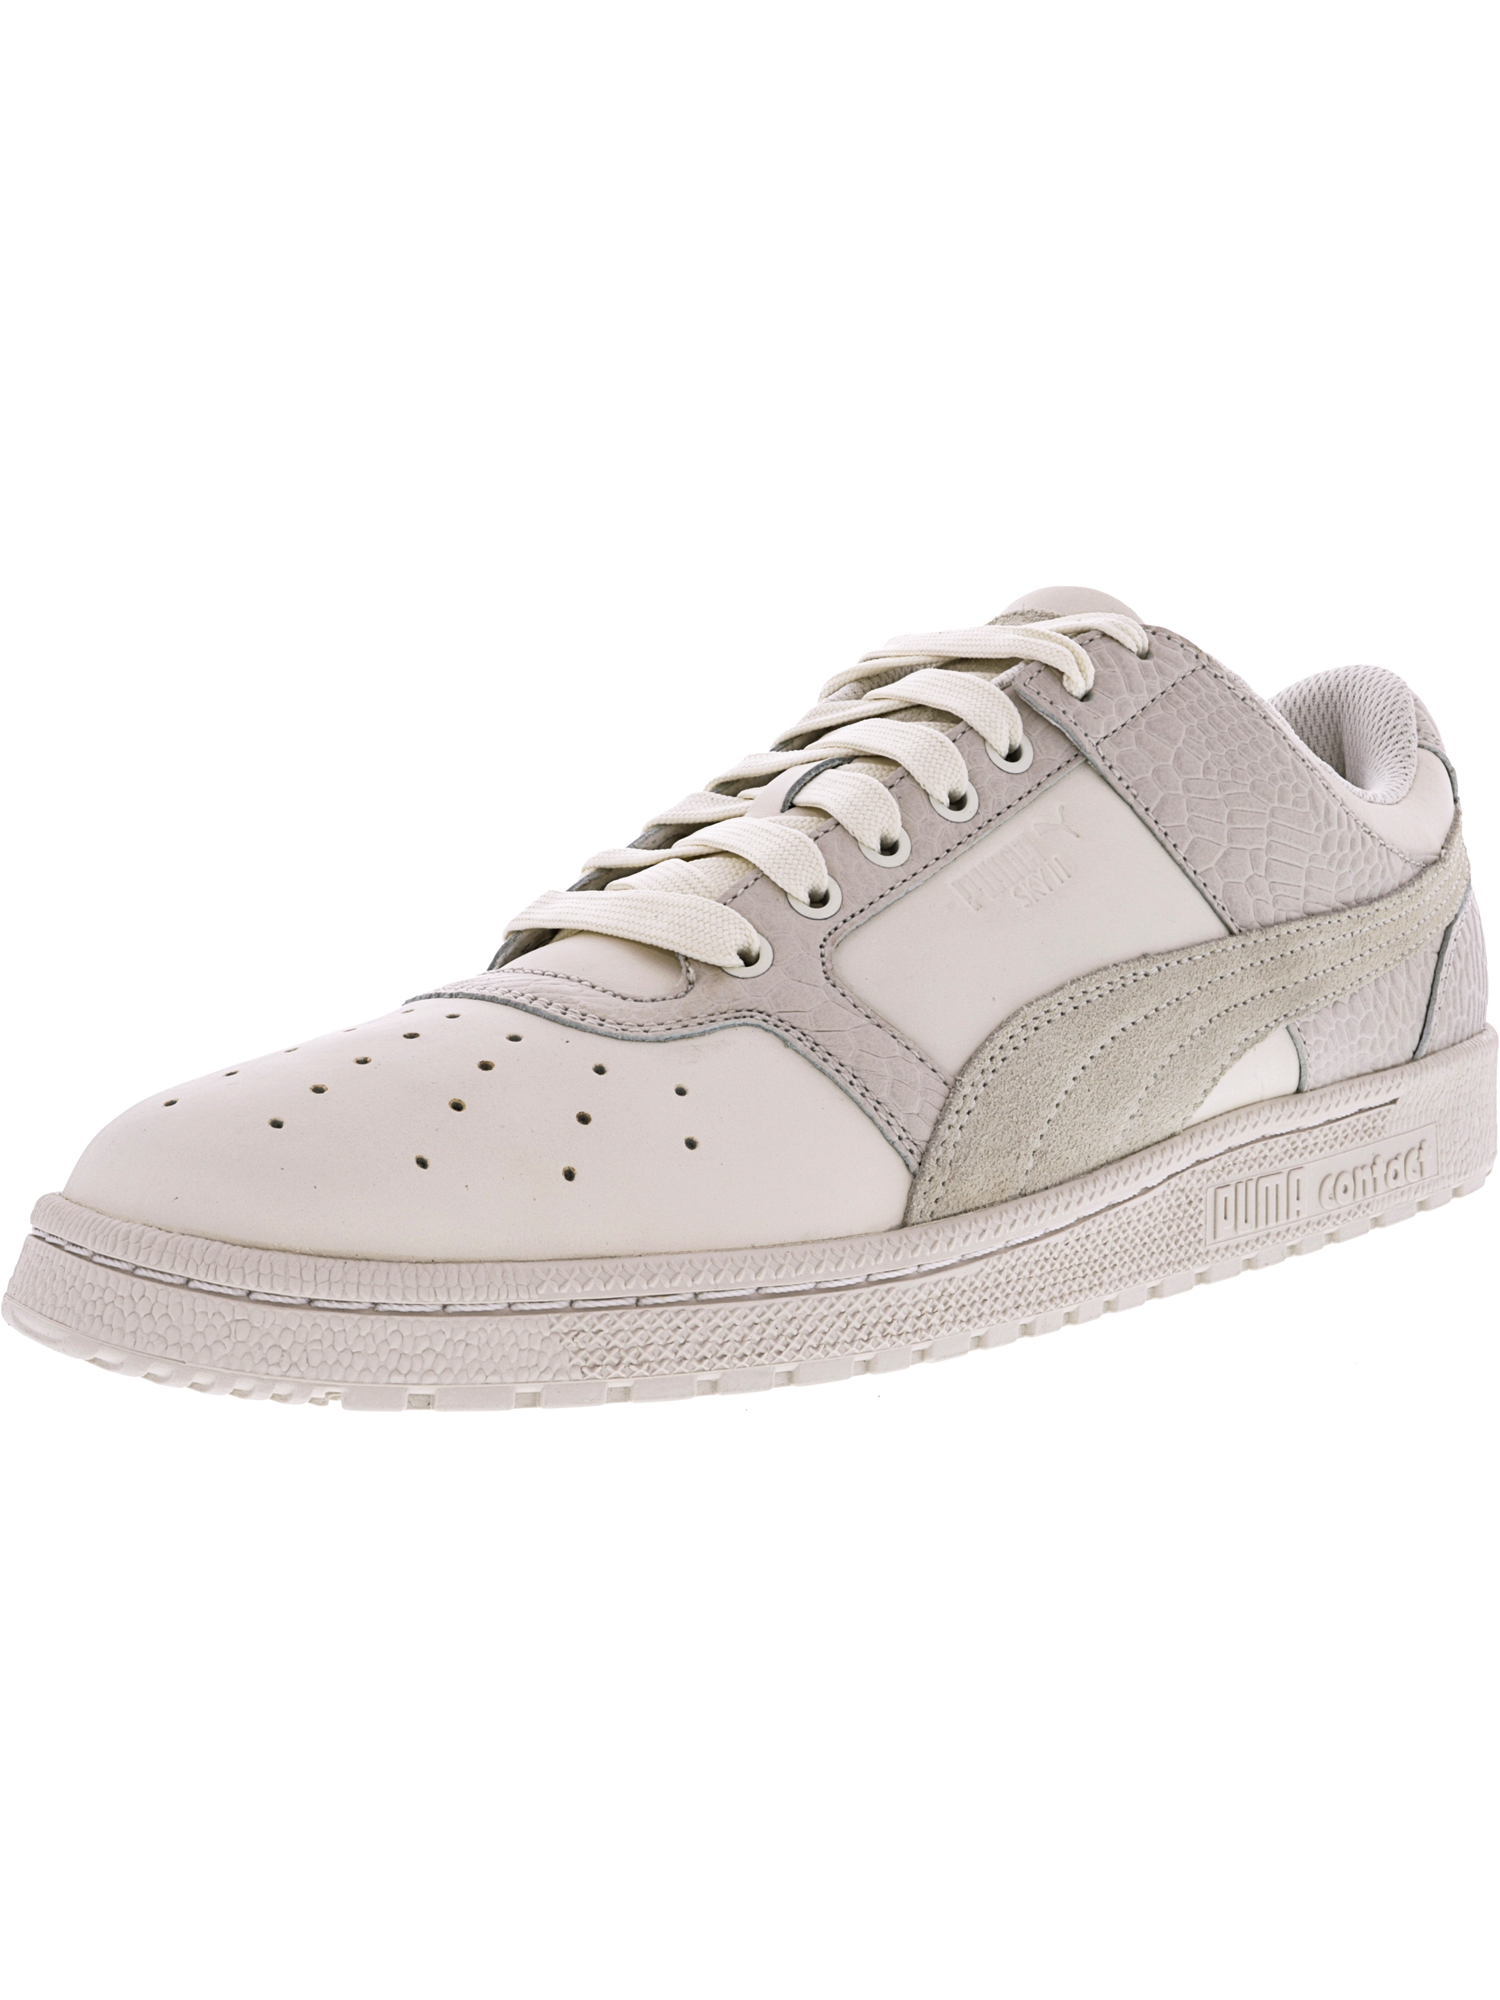 6a91b33f93dd55 Puma Men s Sky Ii Lo Color Blocked Leather Whisper White-Whisper White Low  Top Fashion Sneaker - 11.5M